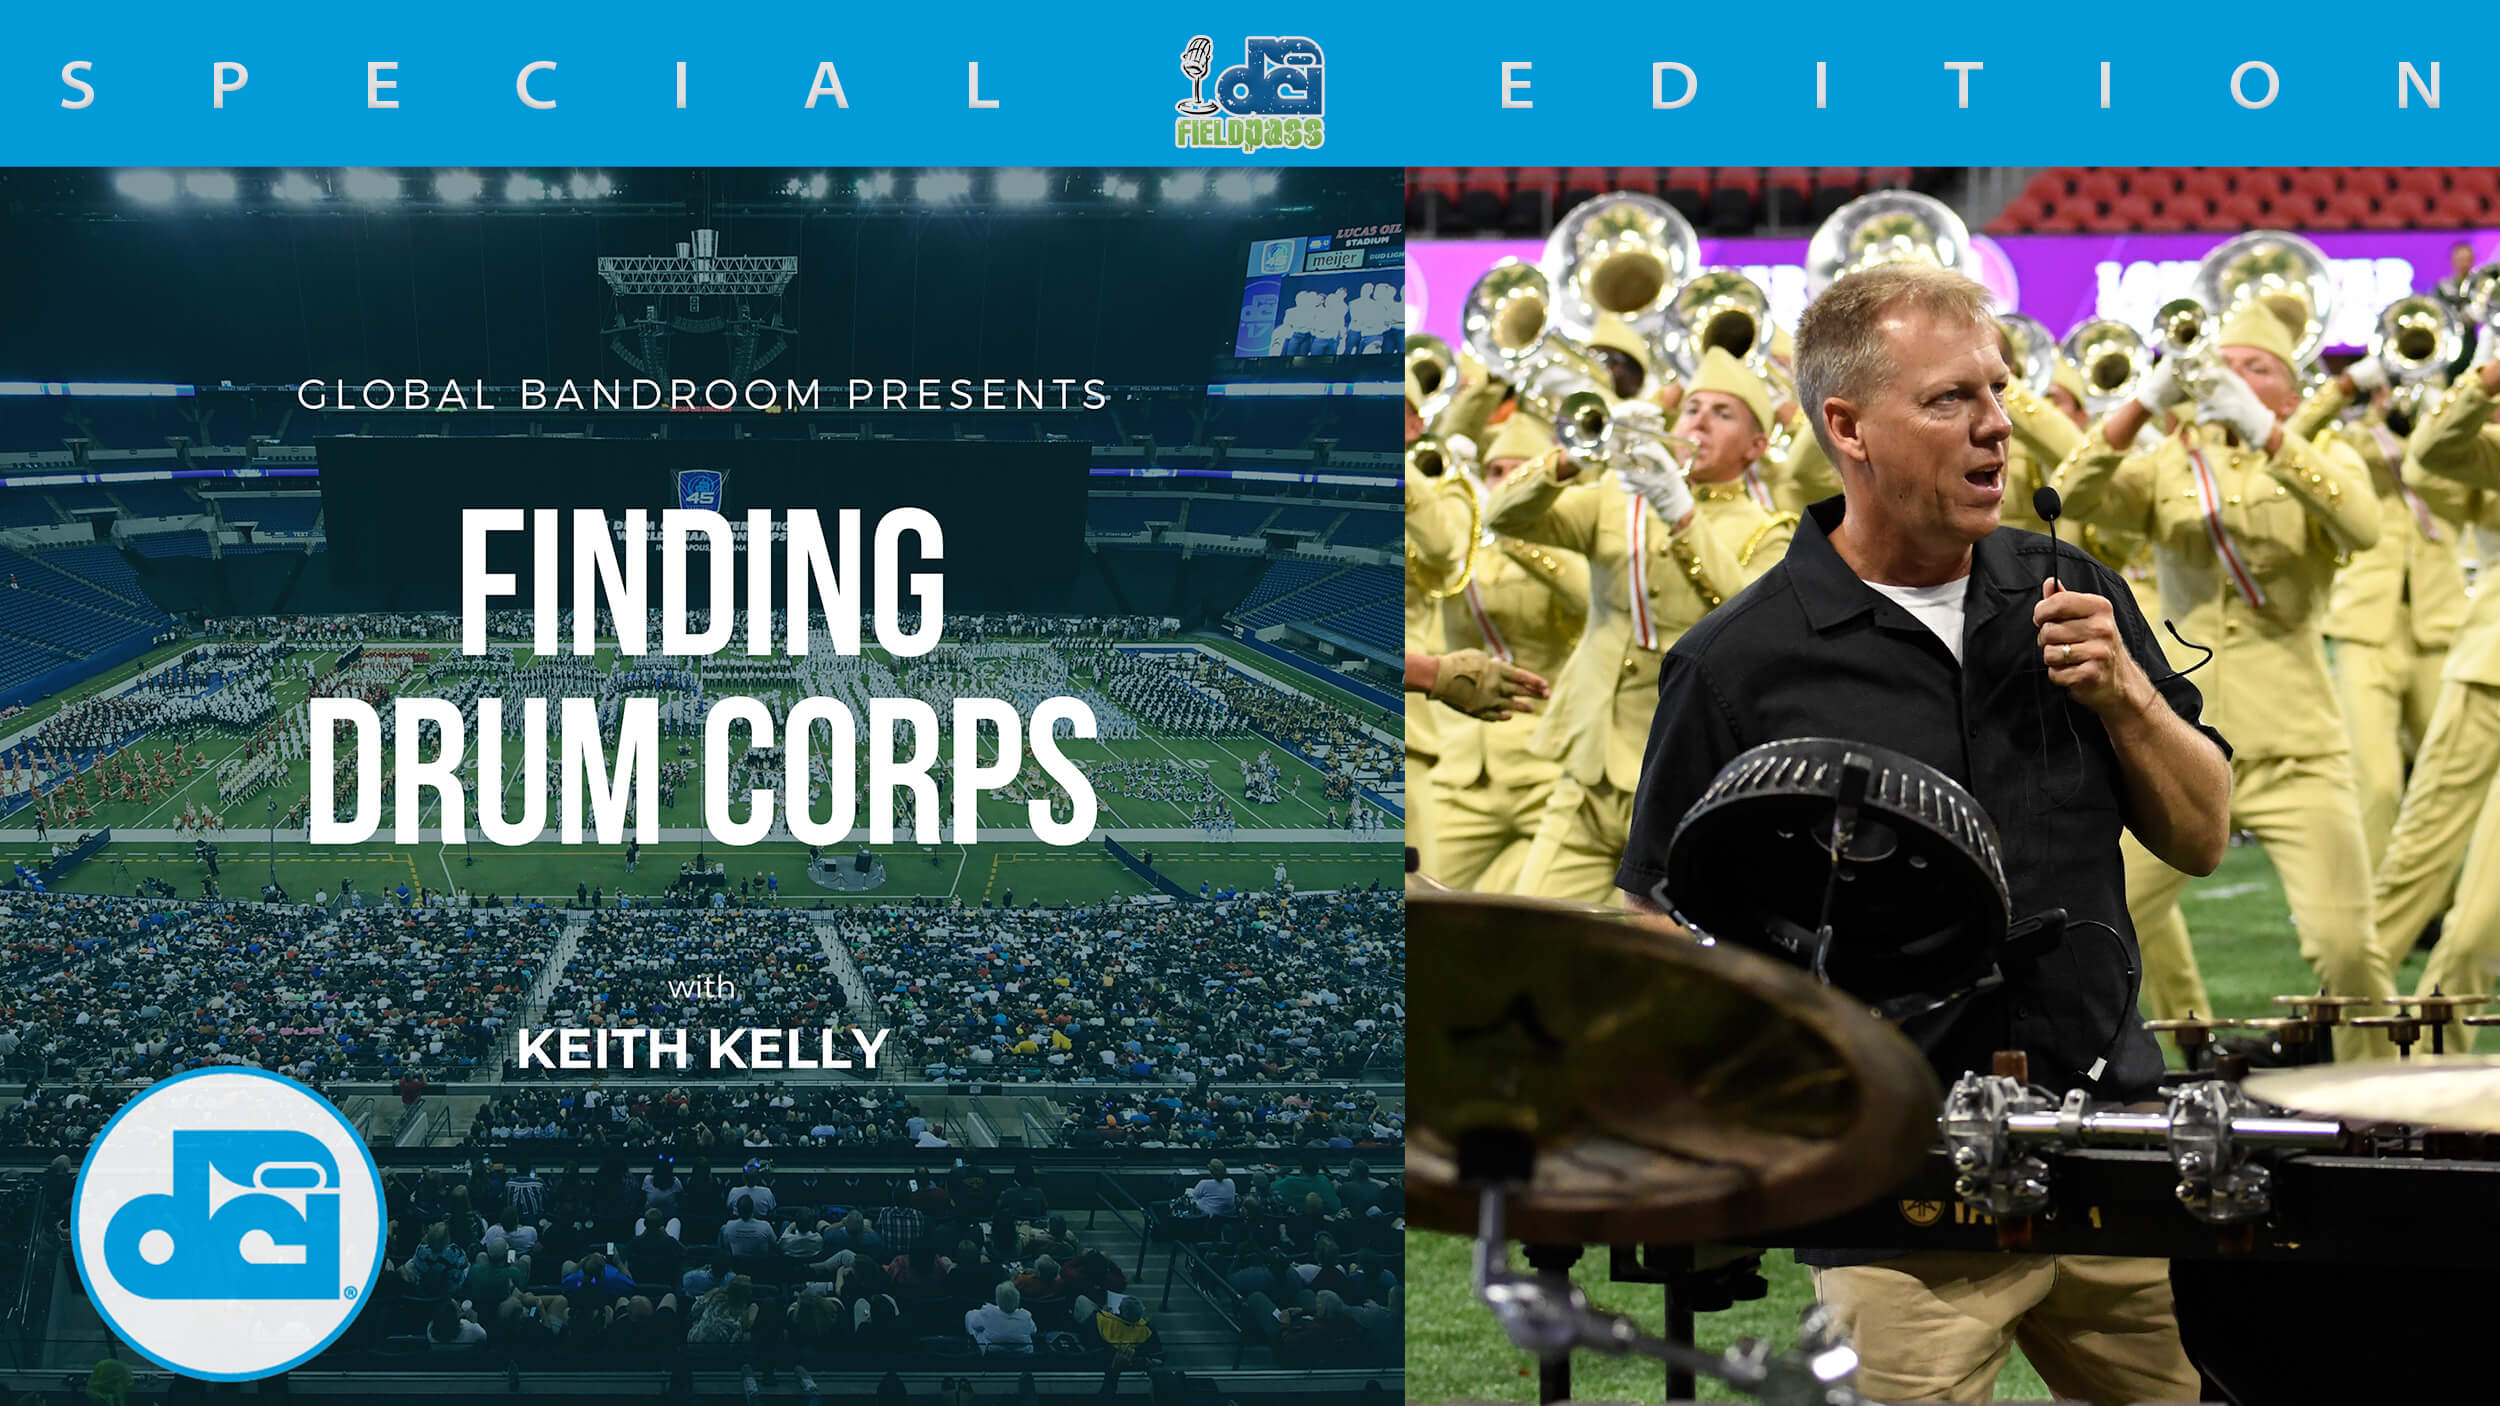 Finding Drum Corps:  The contest